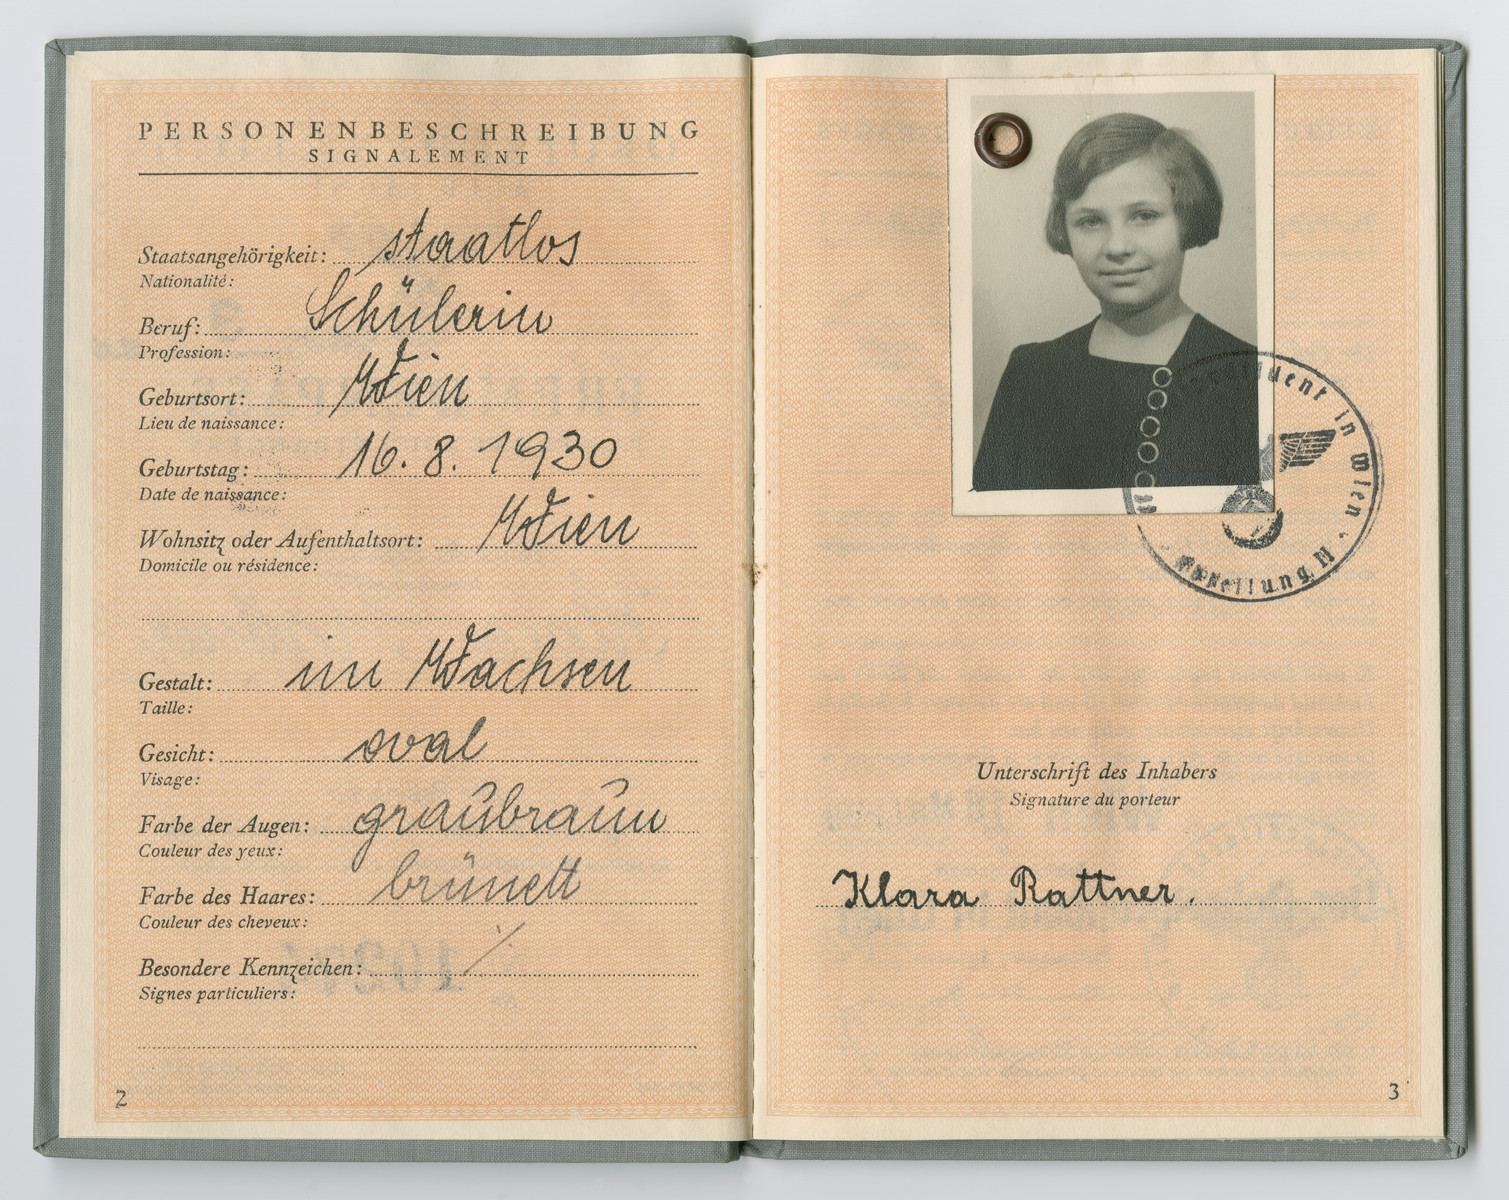 Identification papers issued to Klara Rattner stating she was born in Vienna on August 16, 1930 but is officially stateless.